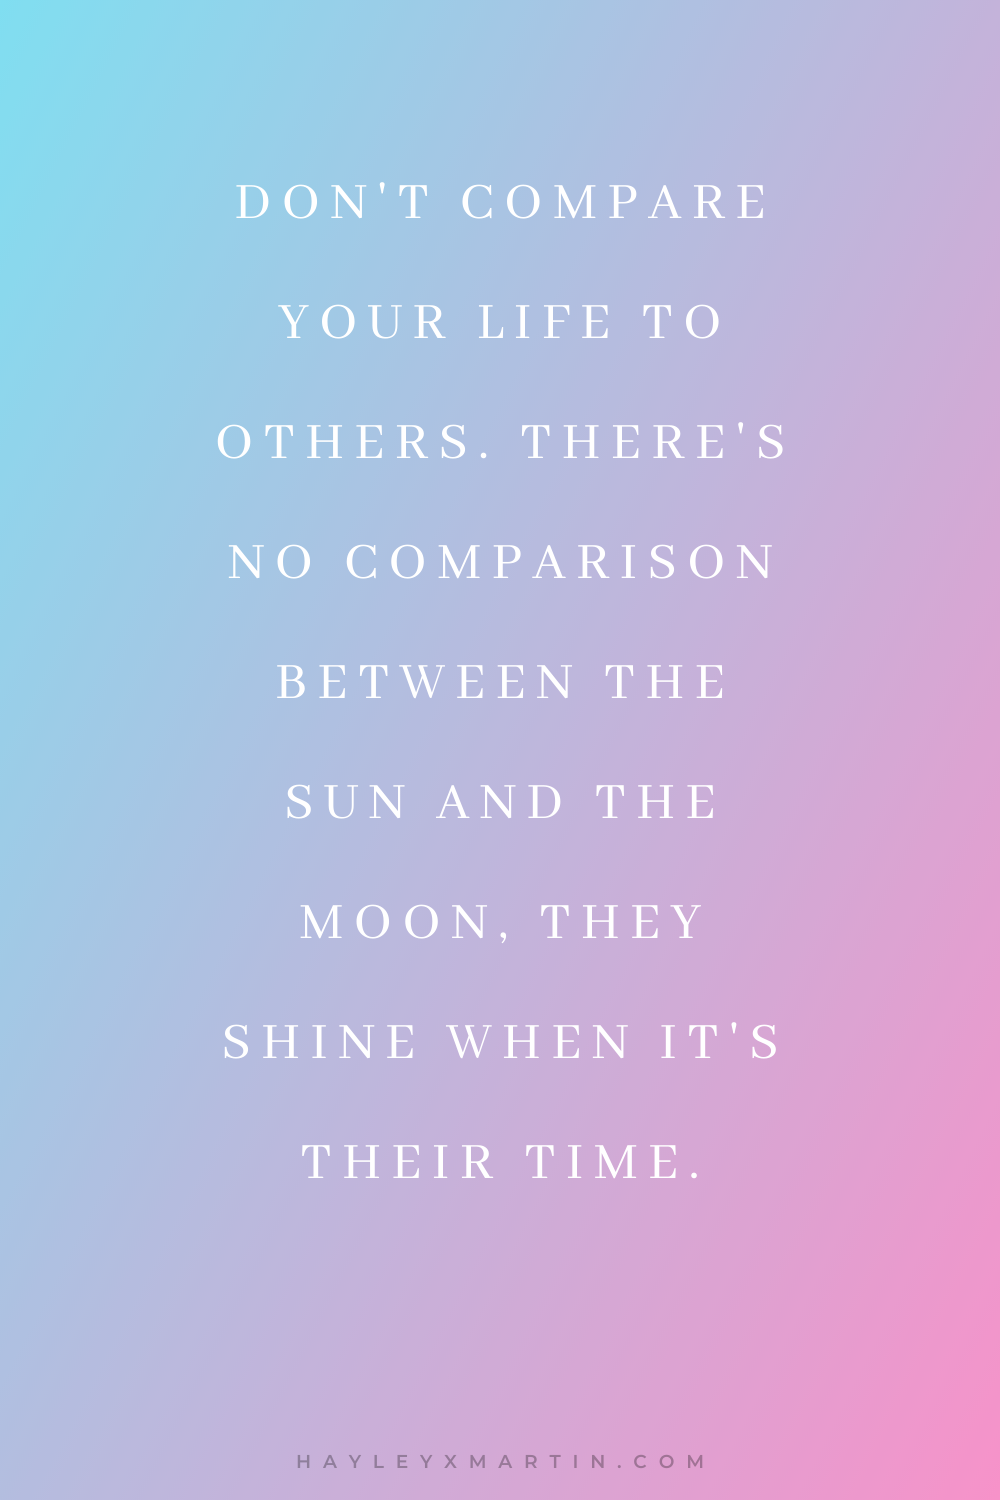 DON'T COMPARE YOUR LIFE TO OTHERS. THERE'S NO COMPARISON BETWEEN THE SUN AND THE MOON, THEY SHINE WHEN IT'S THEIR TIME. | HAYLEYXMARTIN